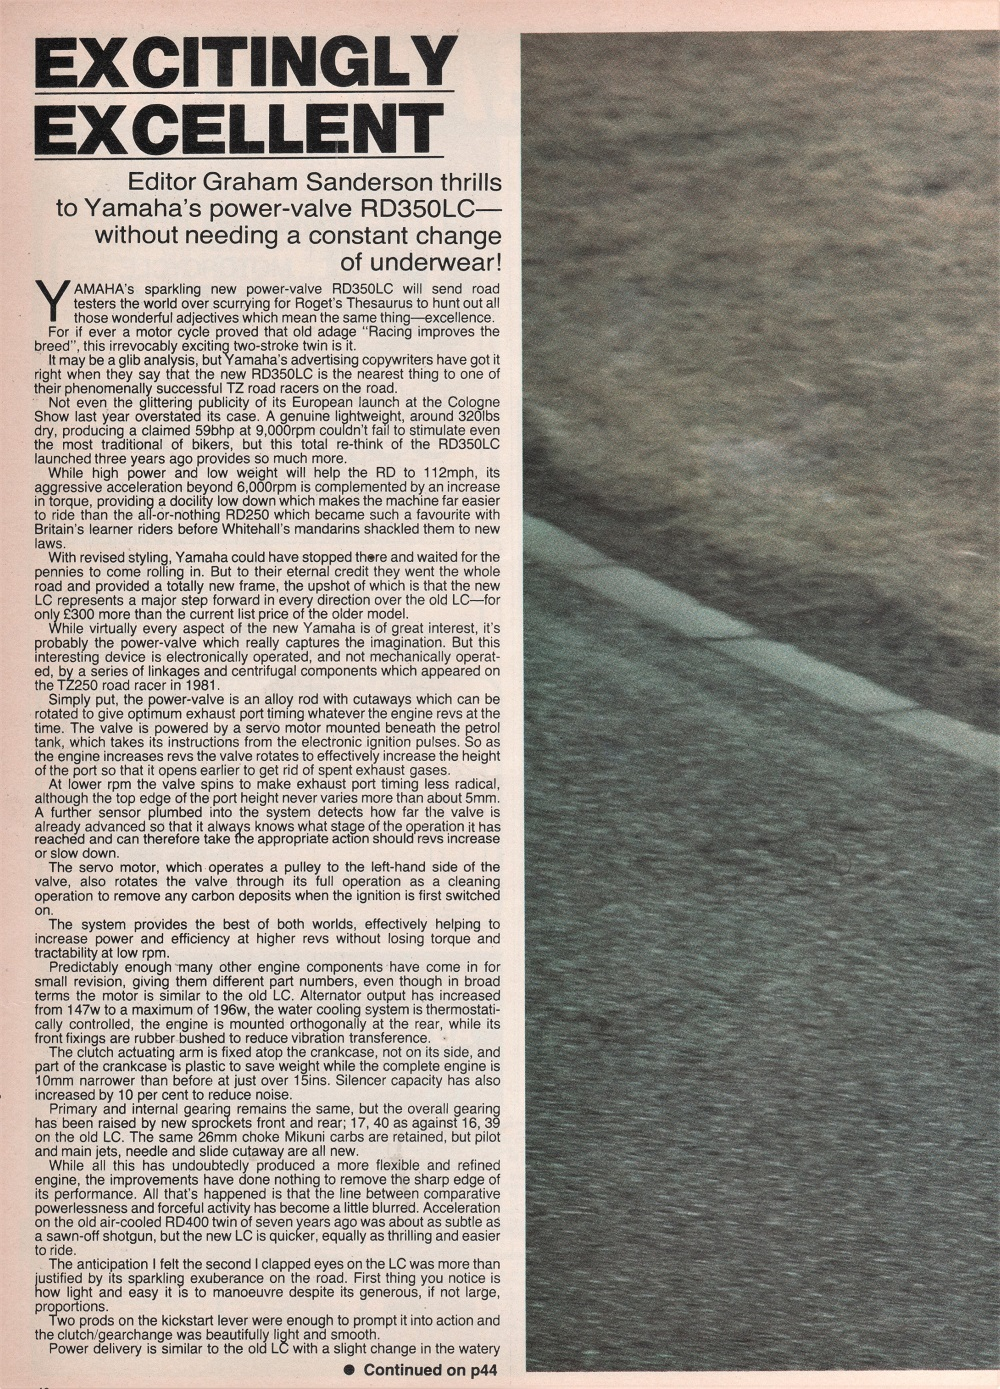 1983 Yamaha RD350LC road test.2.jpg